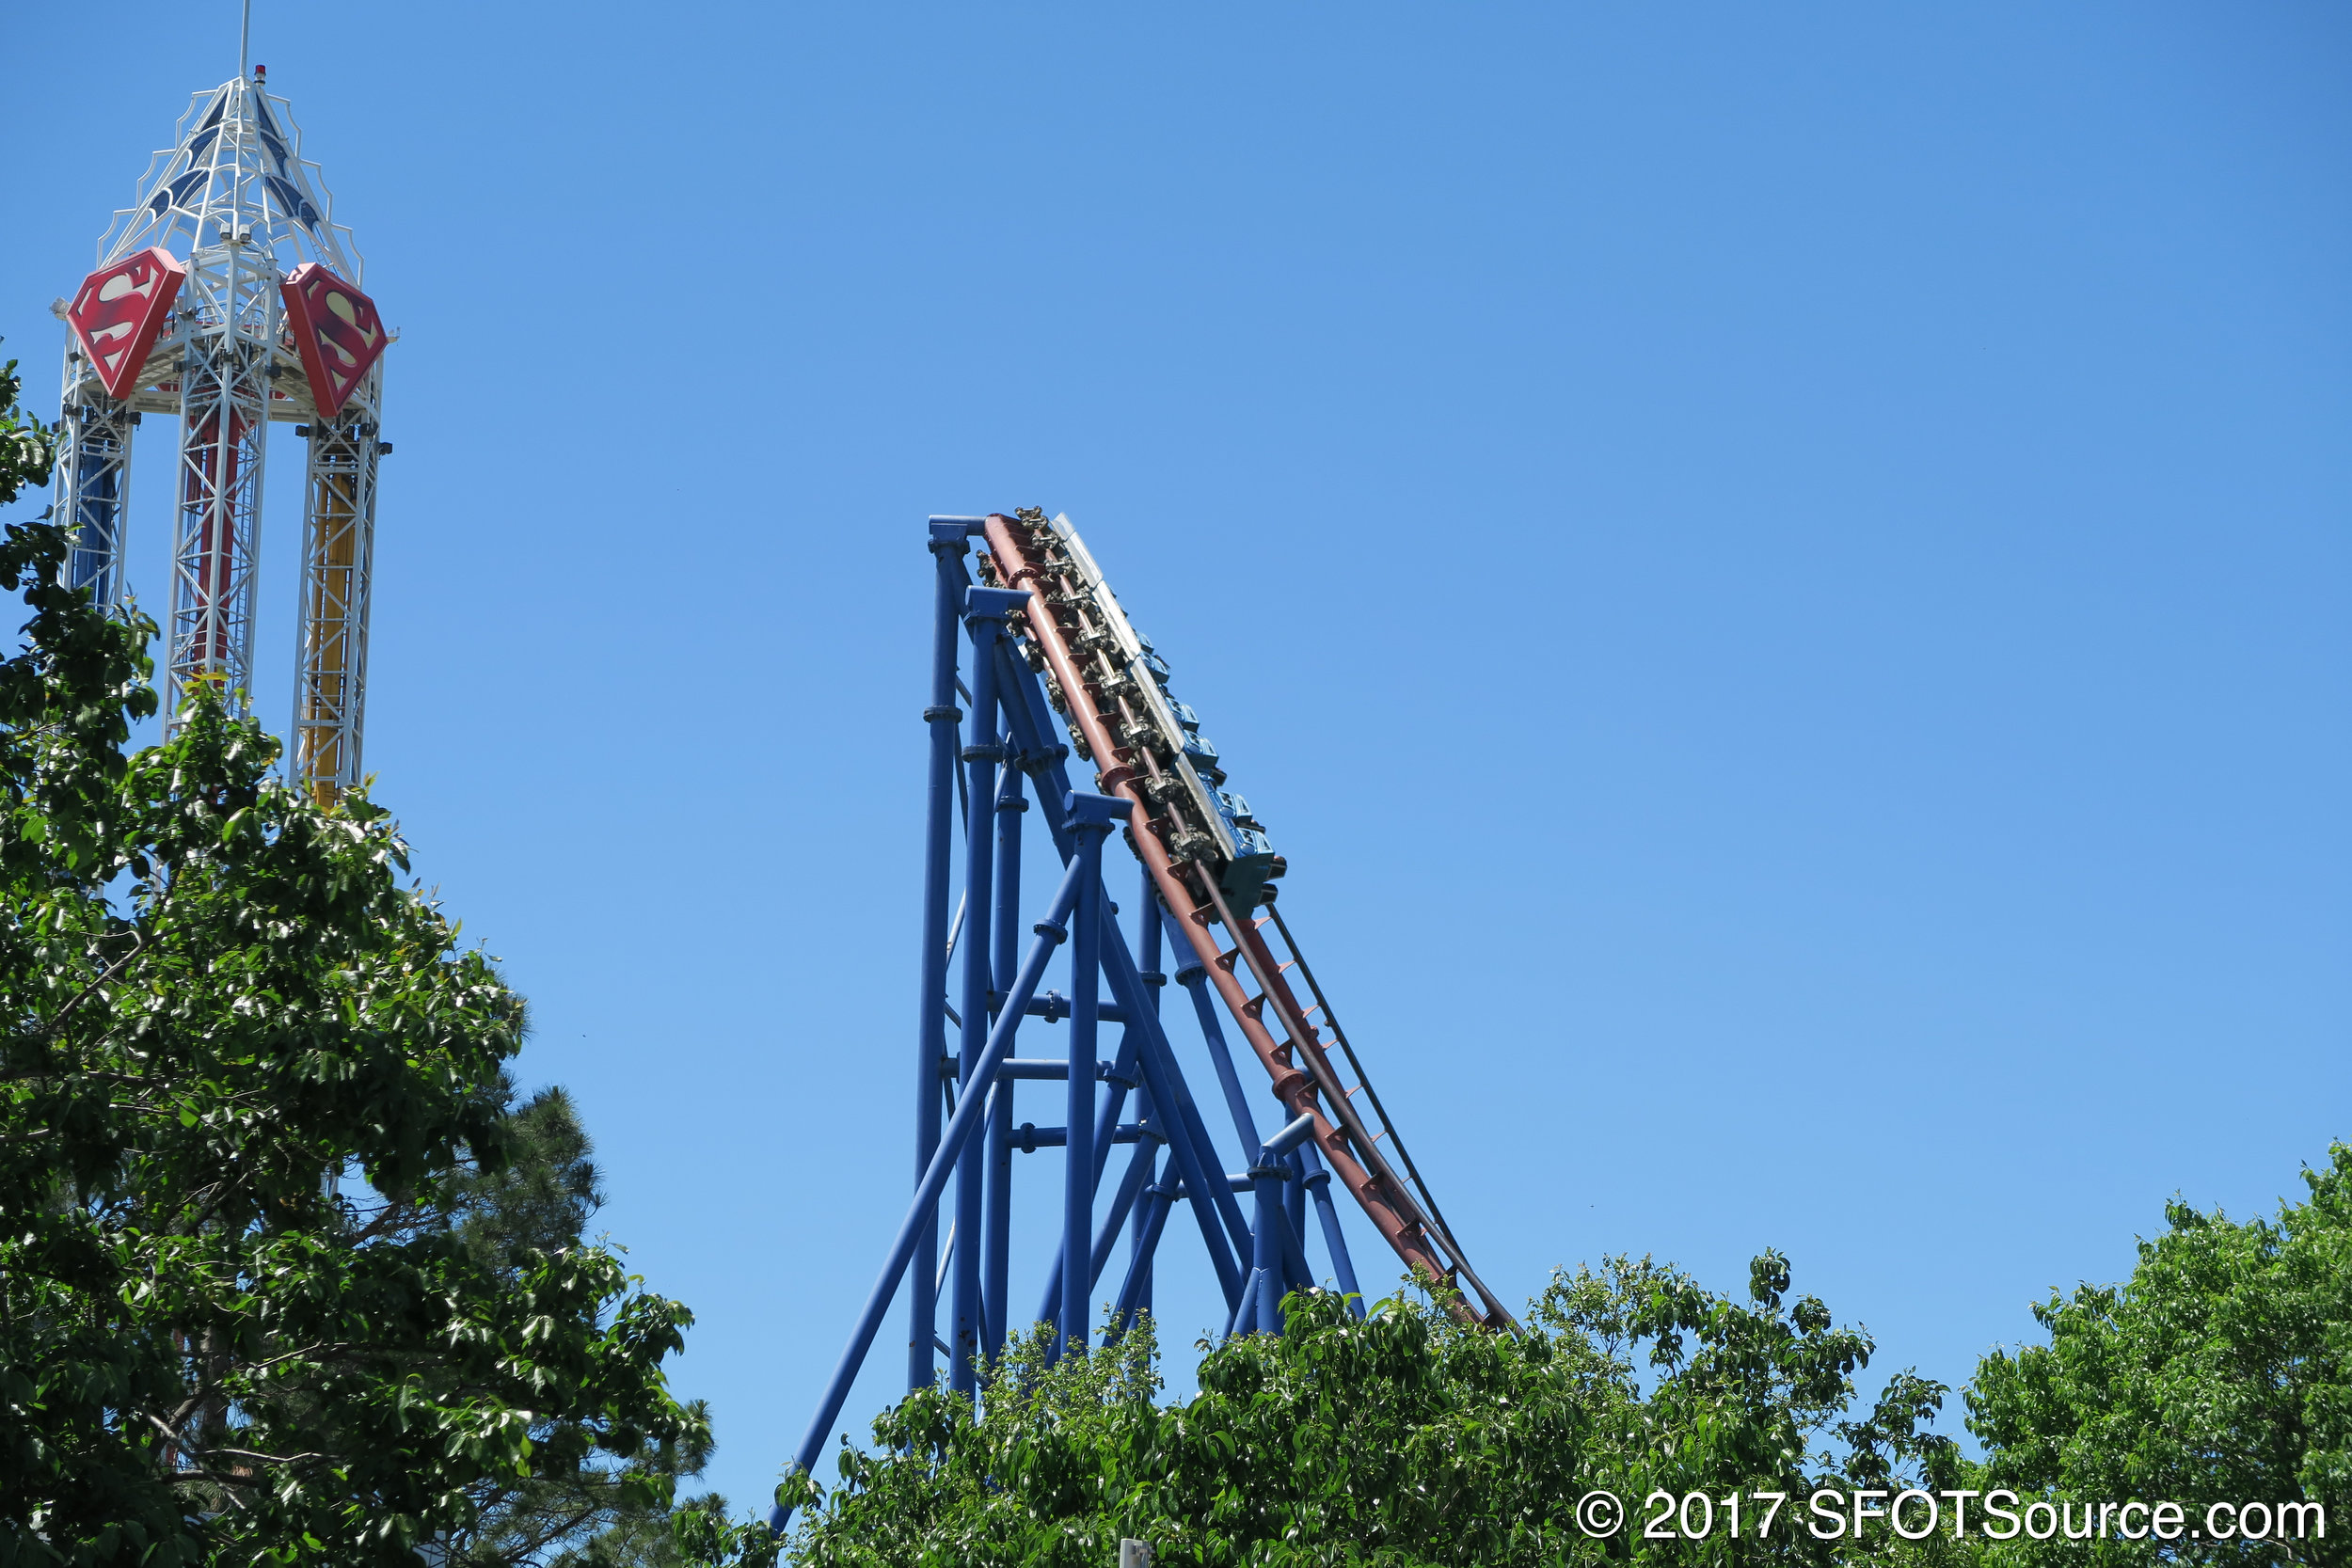 Mr. Freeze features an over-banked turn.